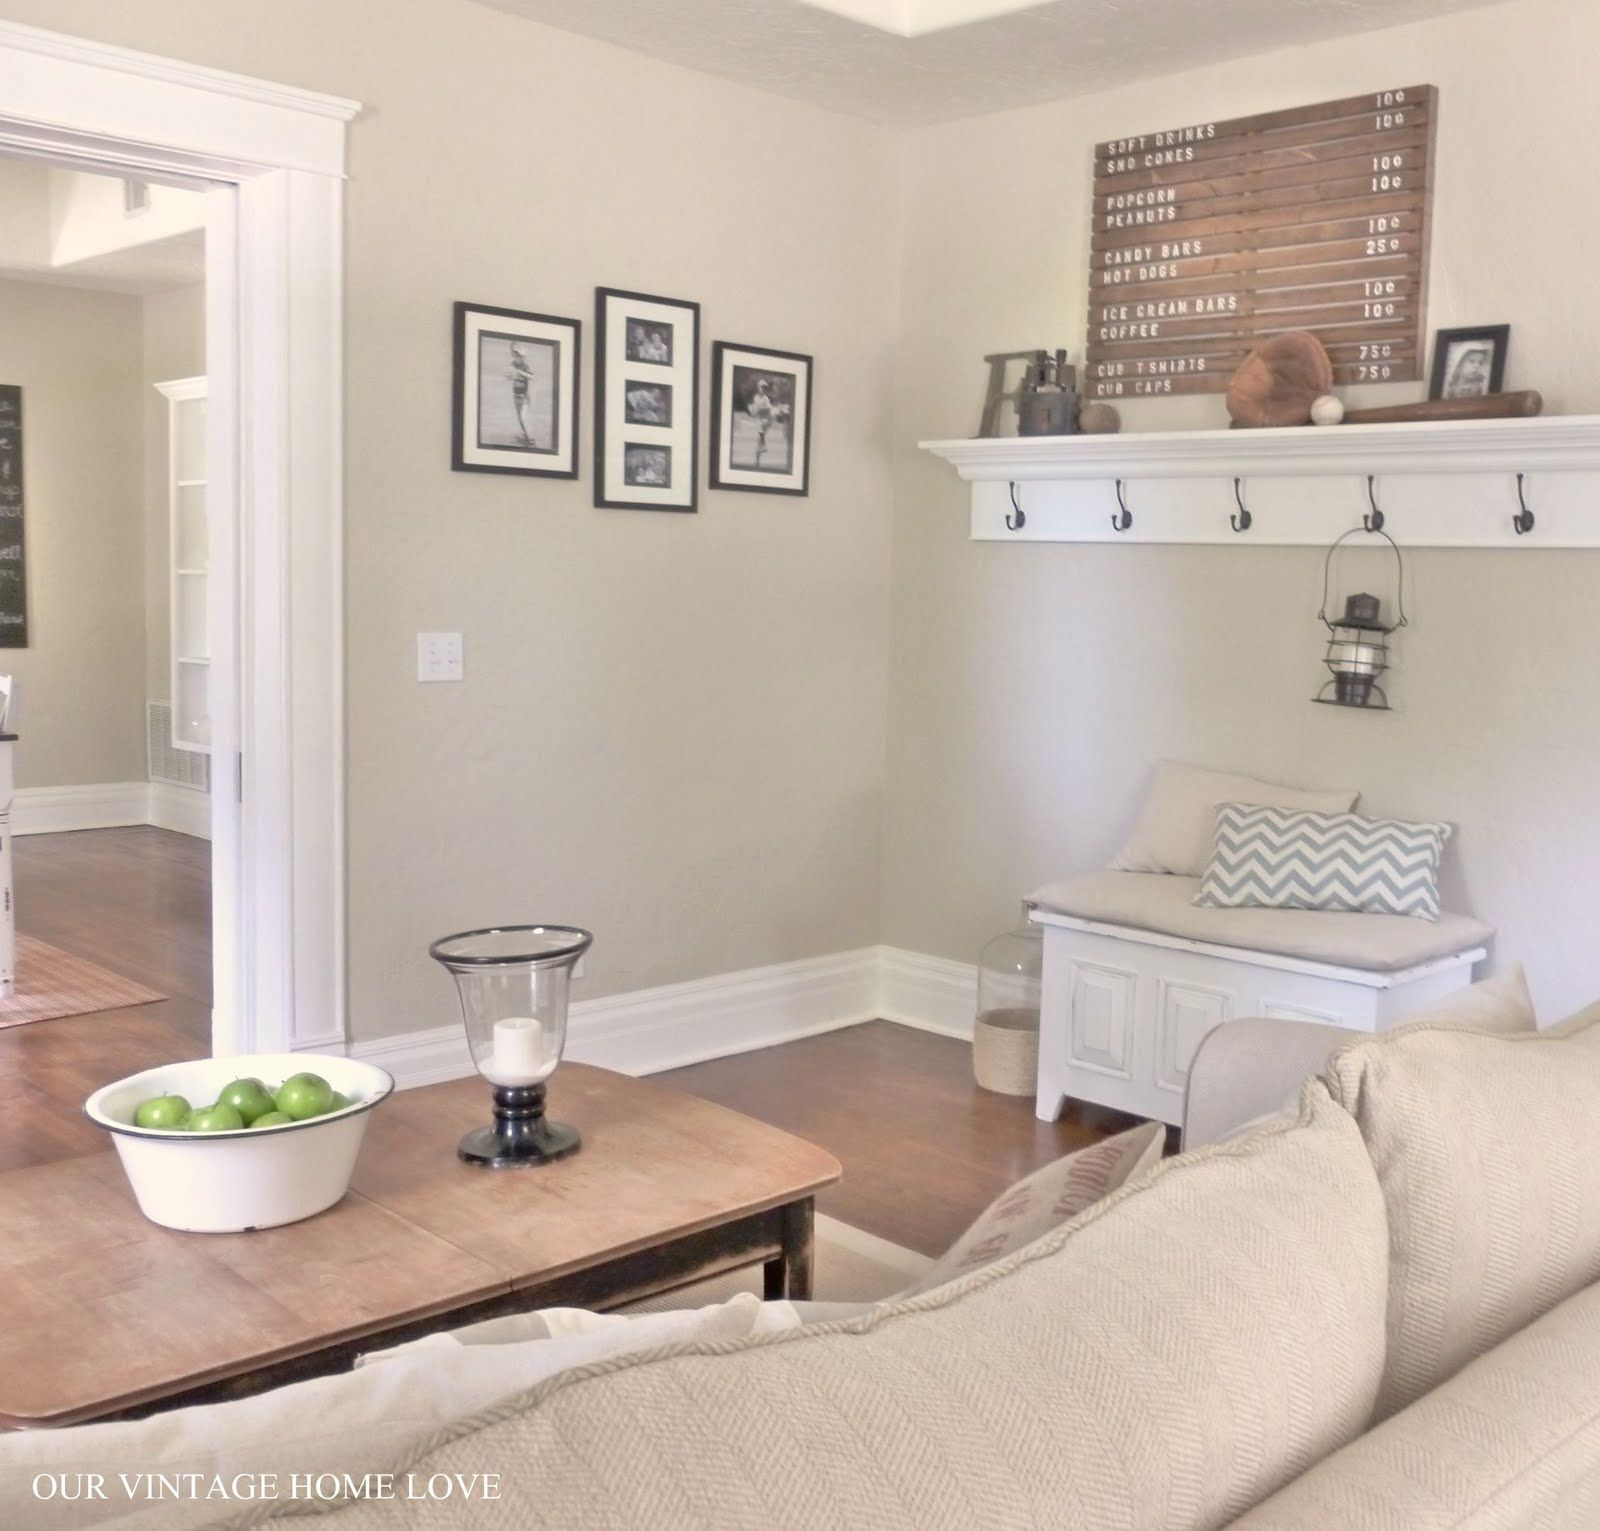 Our vintage home love living room ideas and a new desk paint manchester tan by benjamin moore